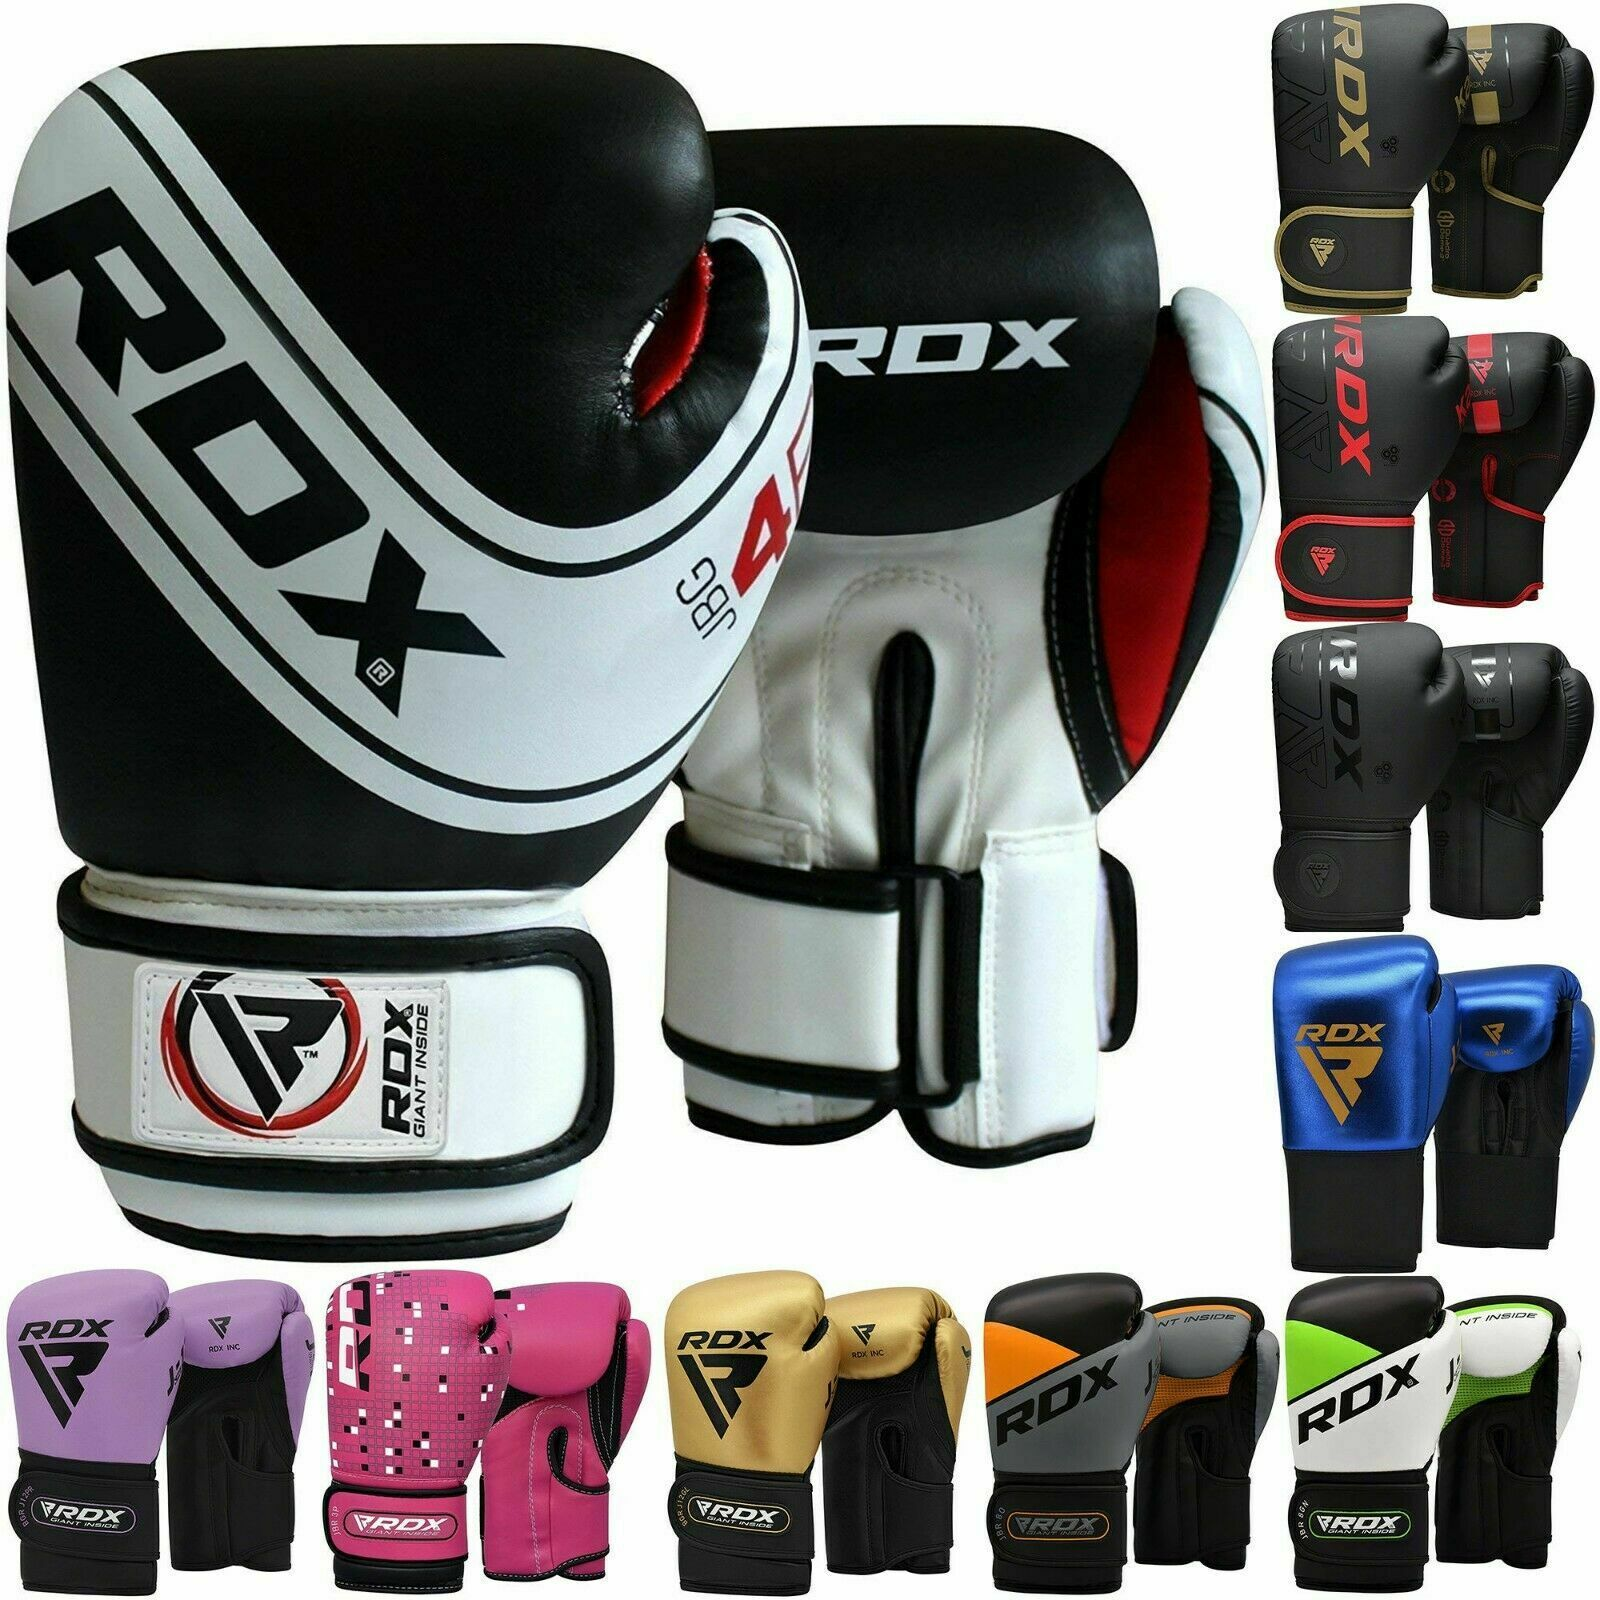 Rdx Kids Boxing Gloves Junior Punching Bag Mitts Mma Muay Thai Training Sparring 1 Of See More